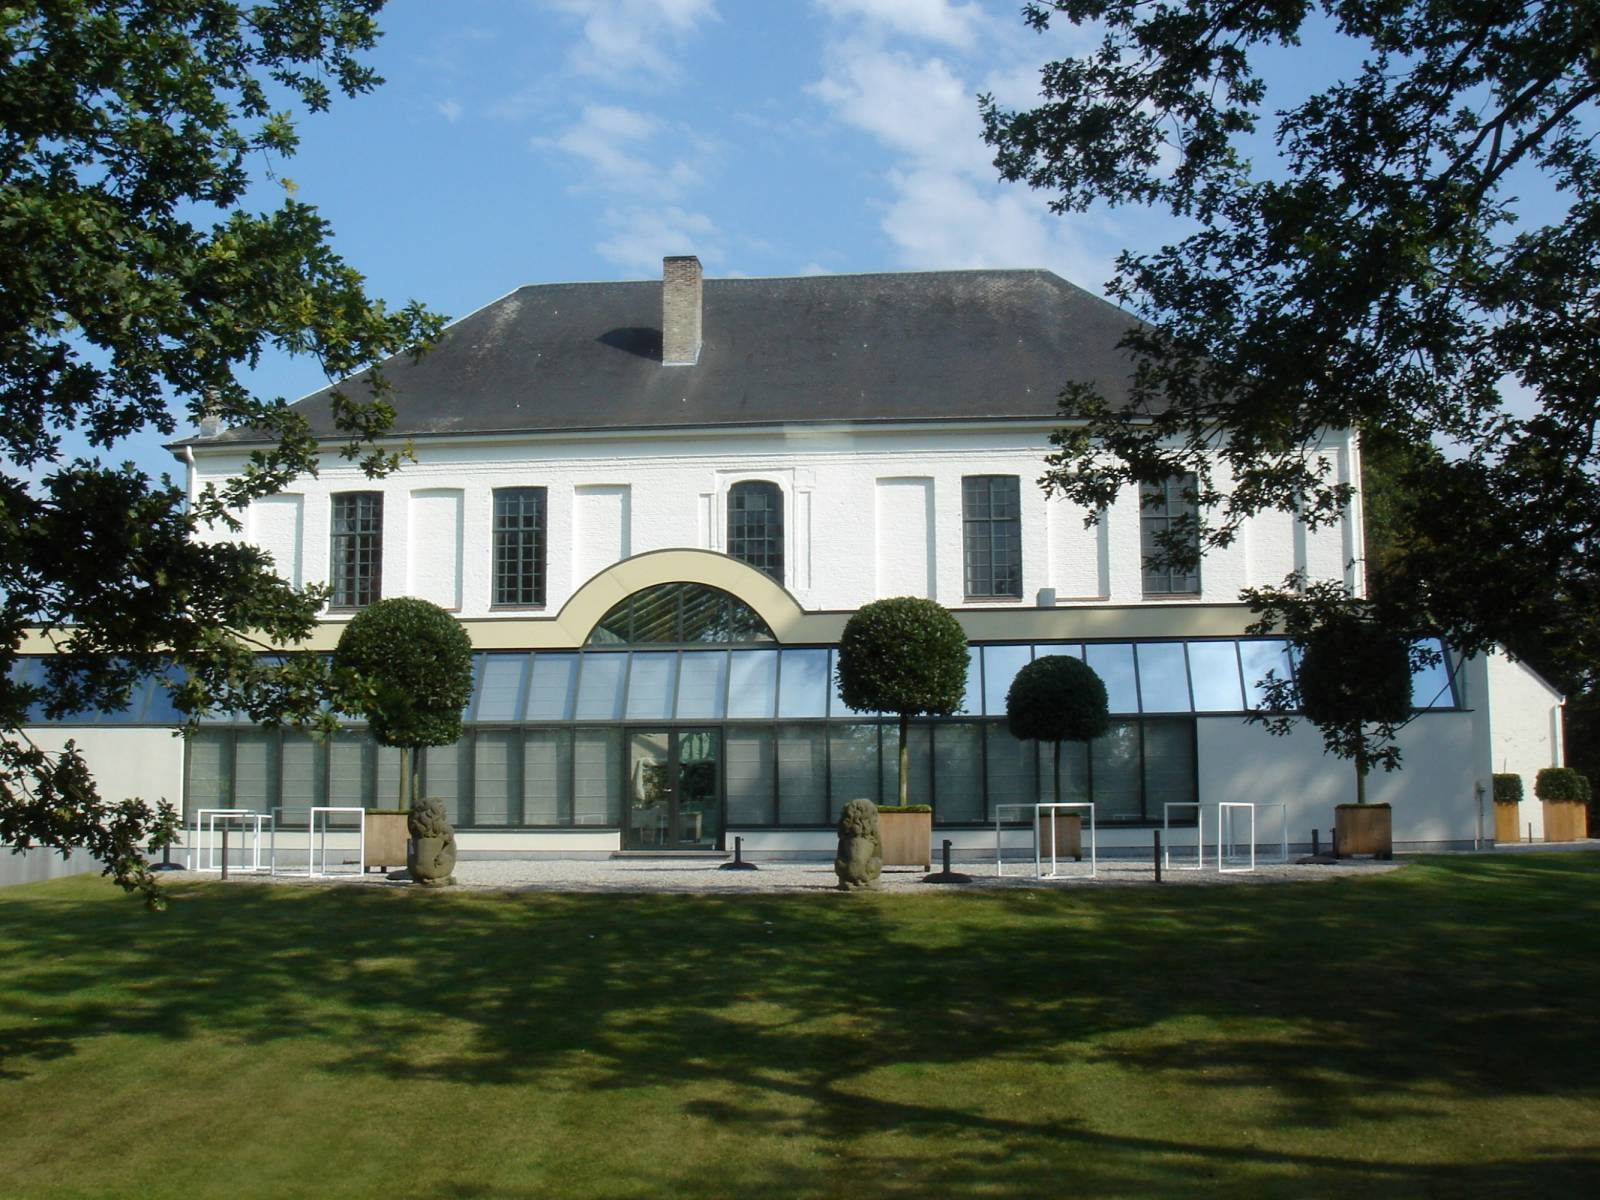 House of Weddings Kasteel Te Lake Feestzaal Oost-Vlaanderen Catering Ceremonie Zulte Gent (24)